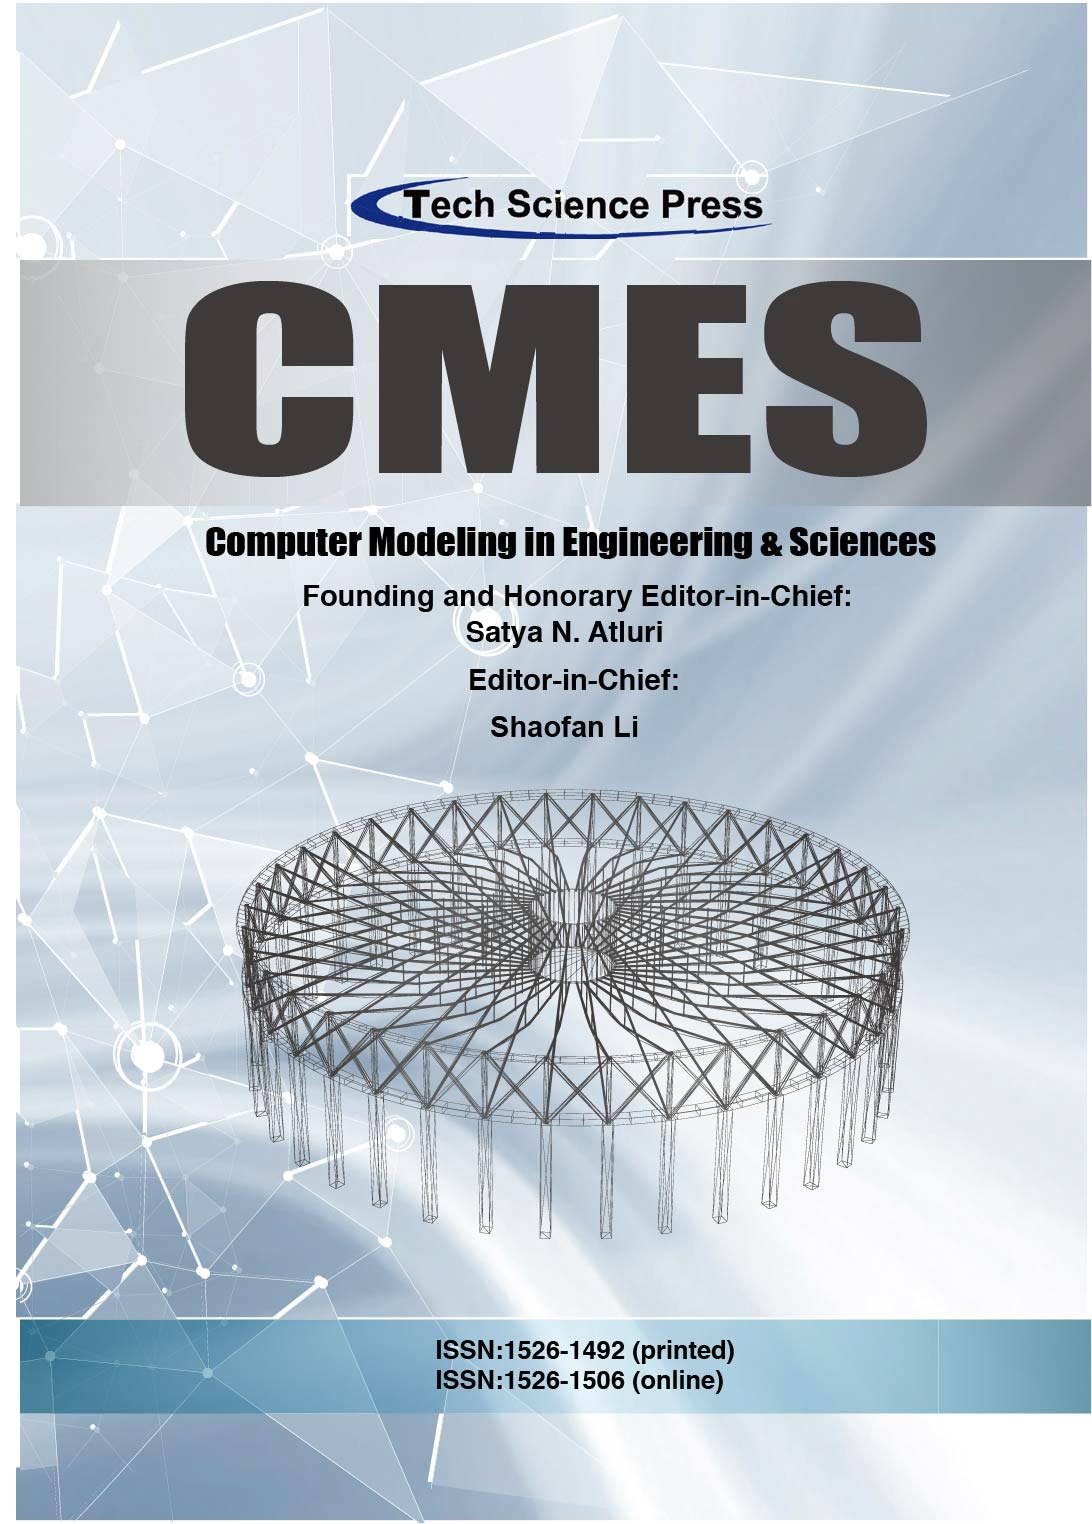 cmes cover